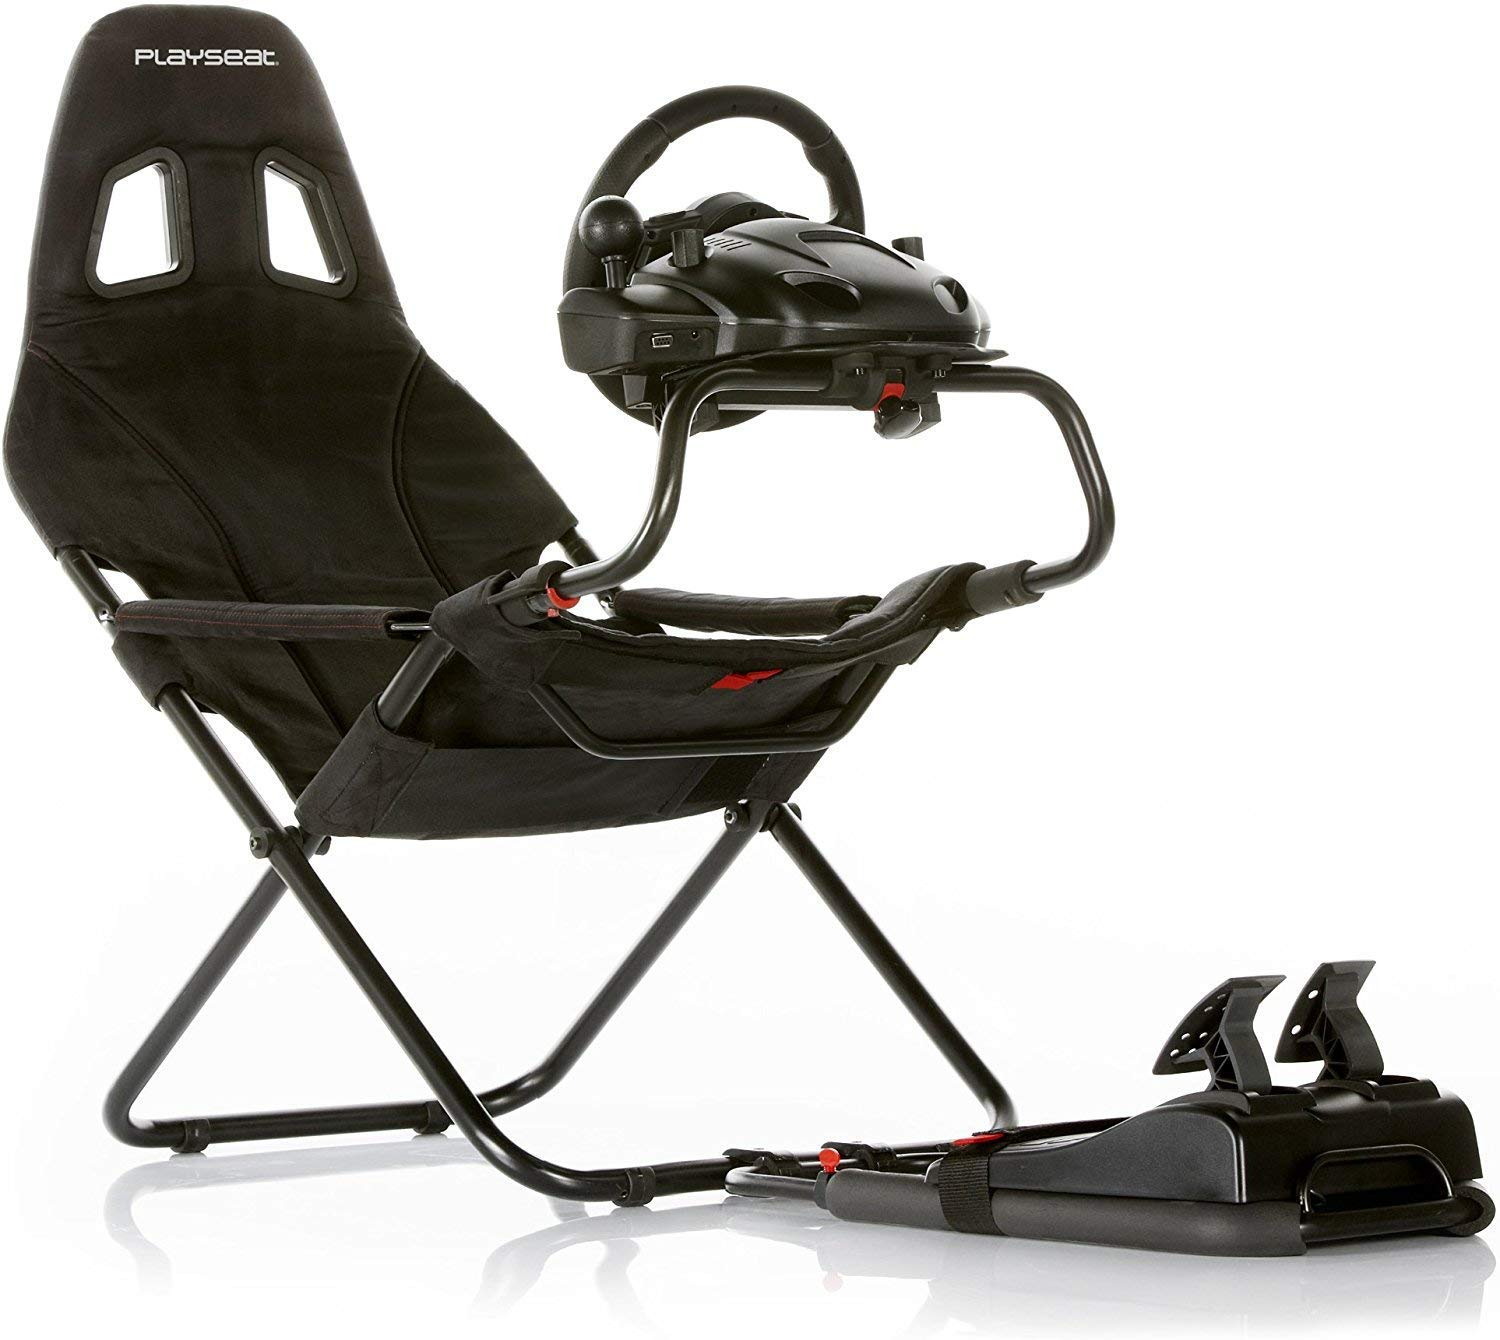 d4eb8a8c0a6 Brand New* PlaySeat Challenge RC.00002 Gaming Racing Seat, Foldable ...